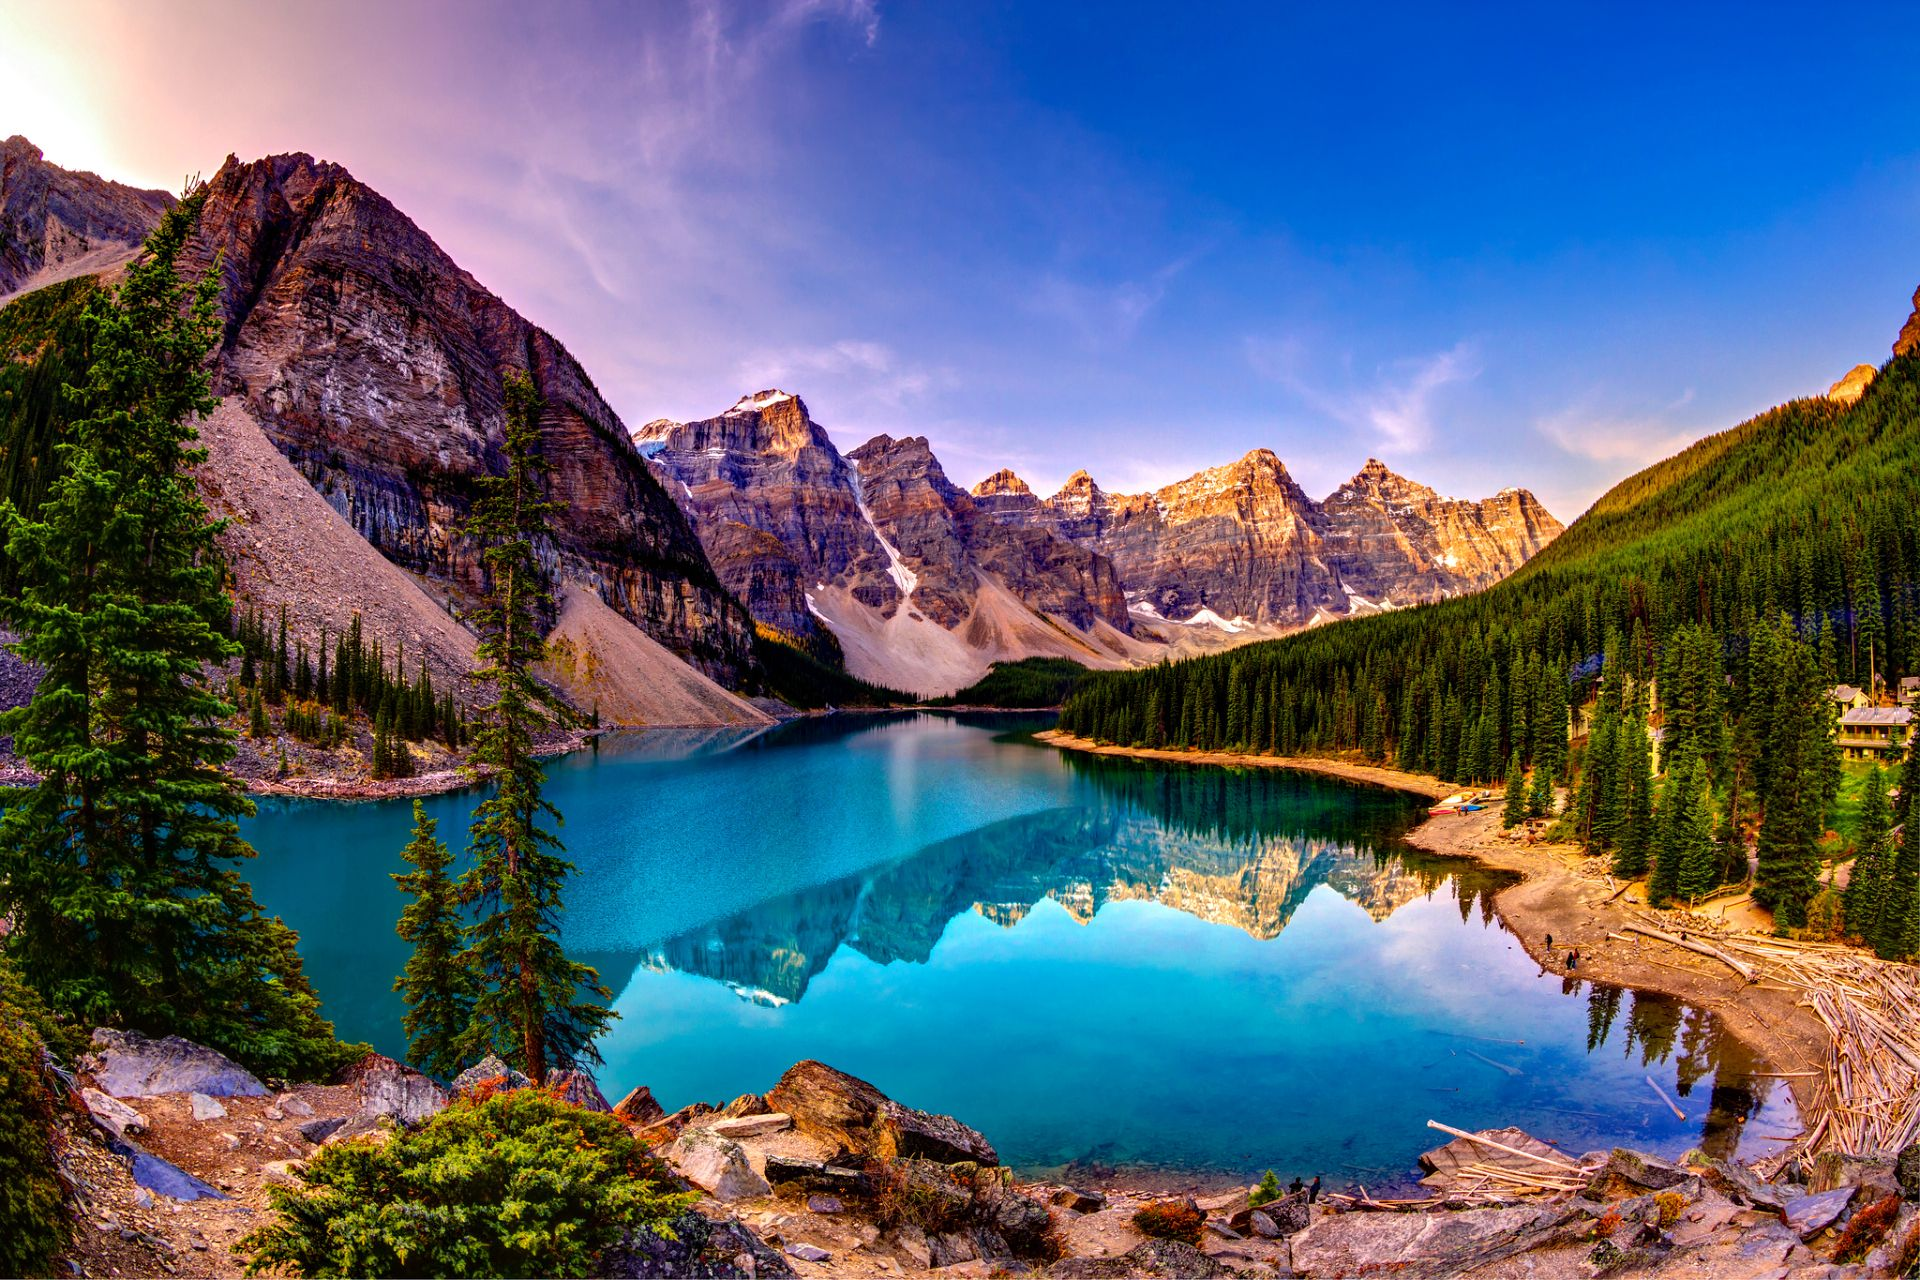 Moraine Lake Wallpaper Photo Galleries And Wallpapers Sunset Wallpaper Lake Sunset Mountain Wallpaper